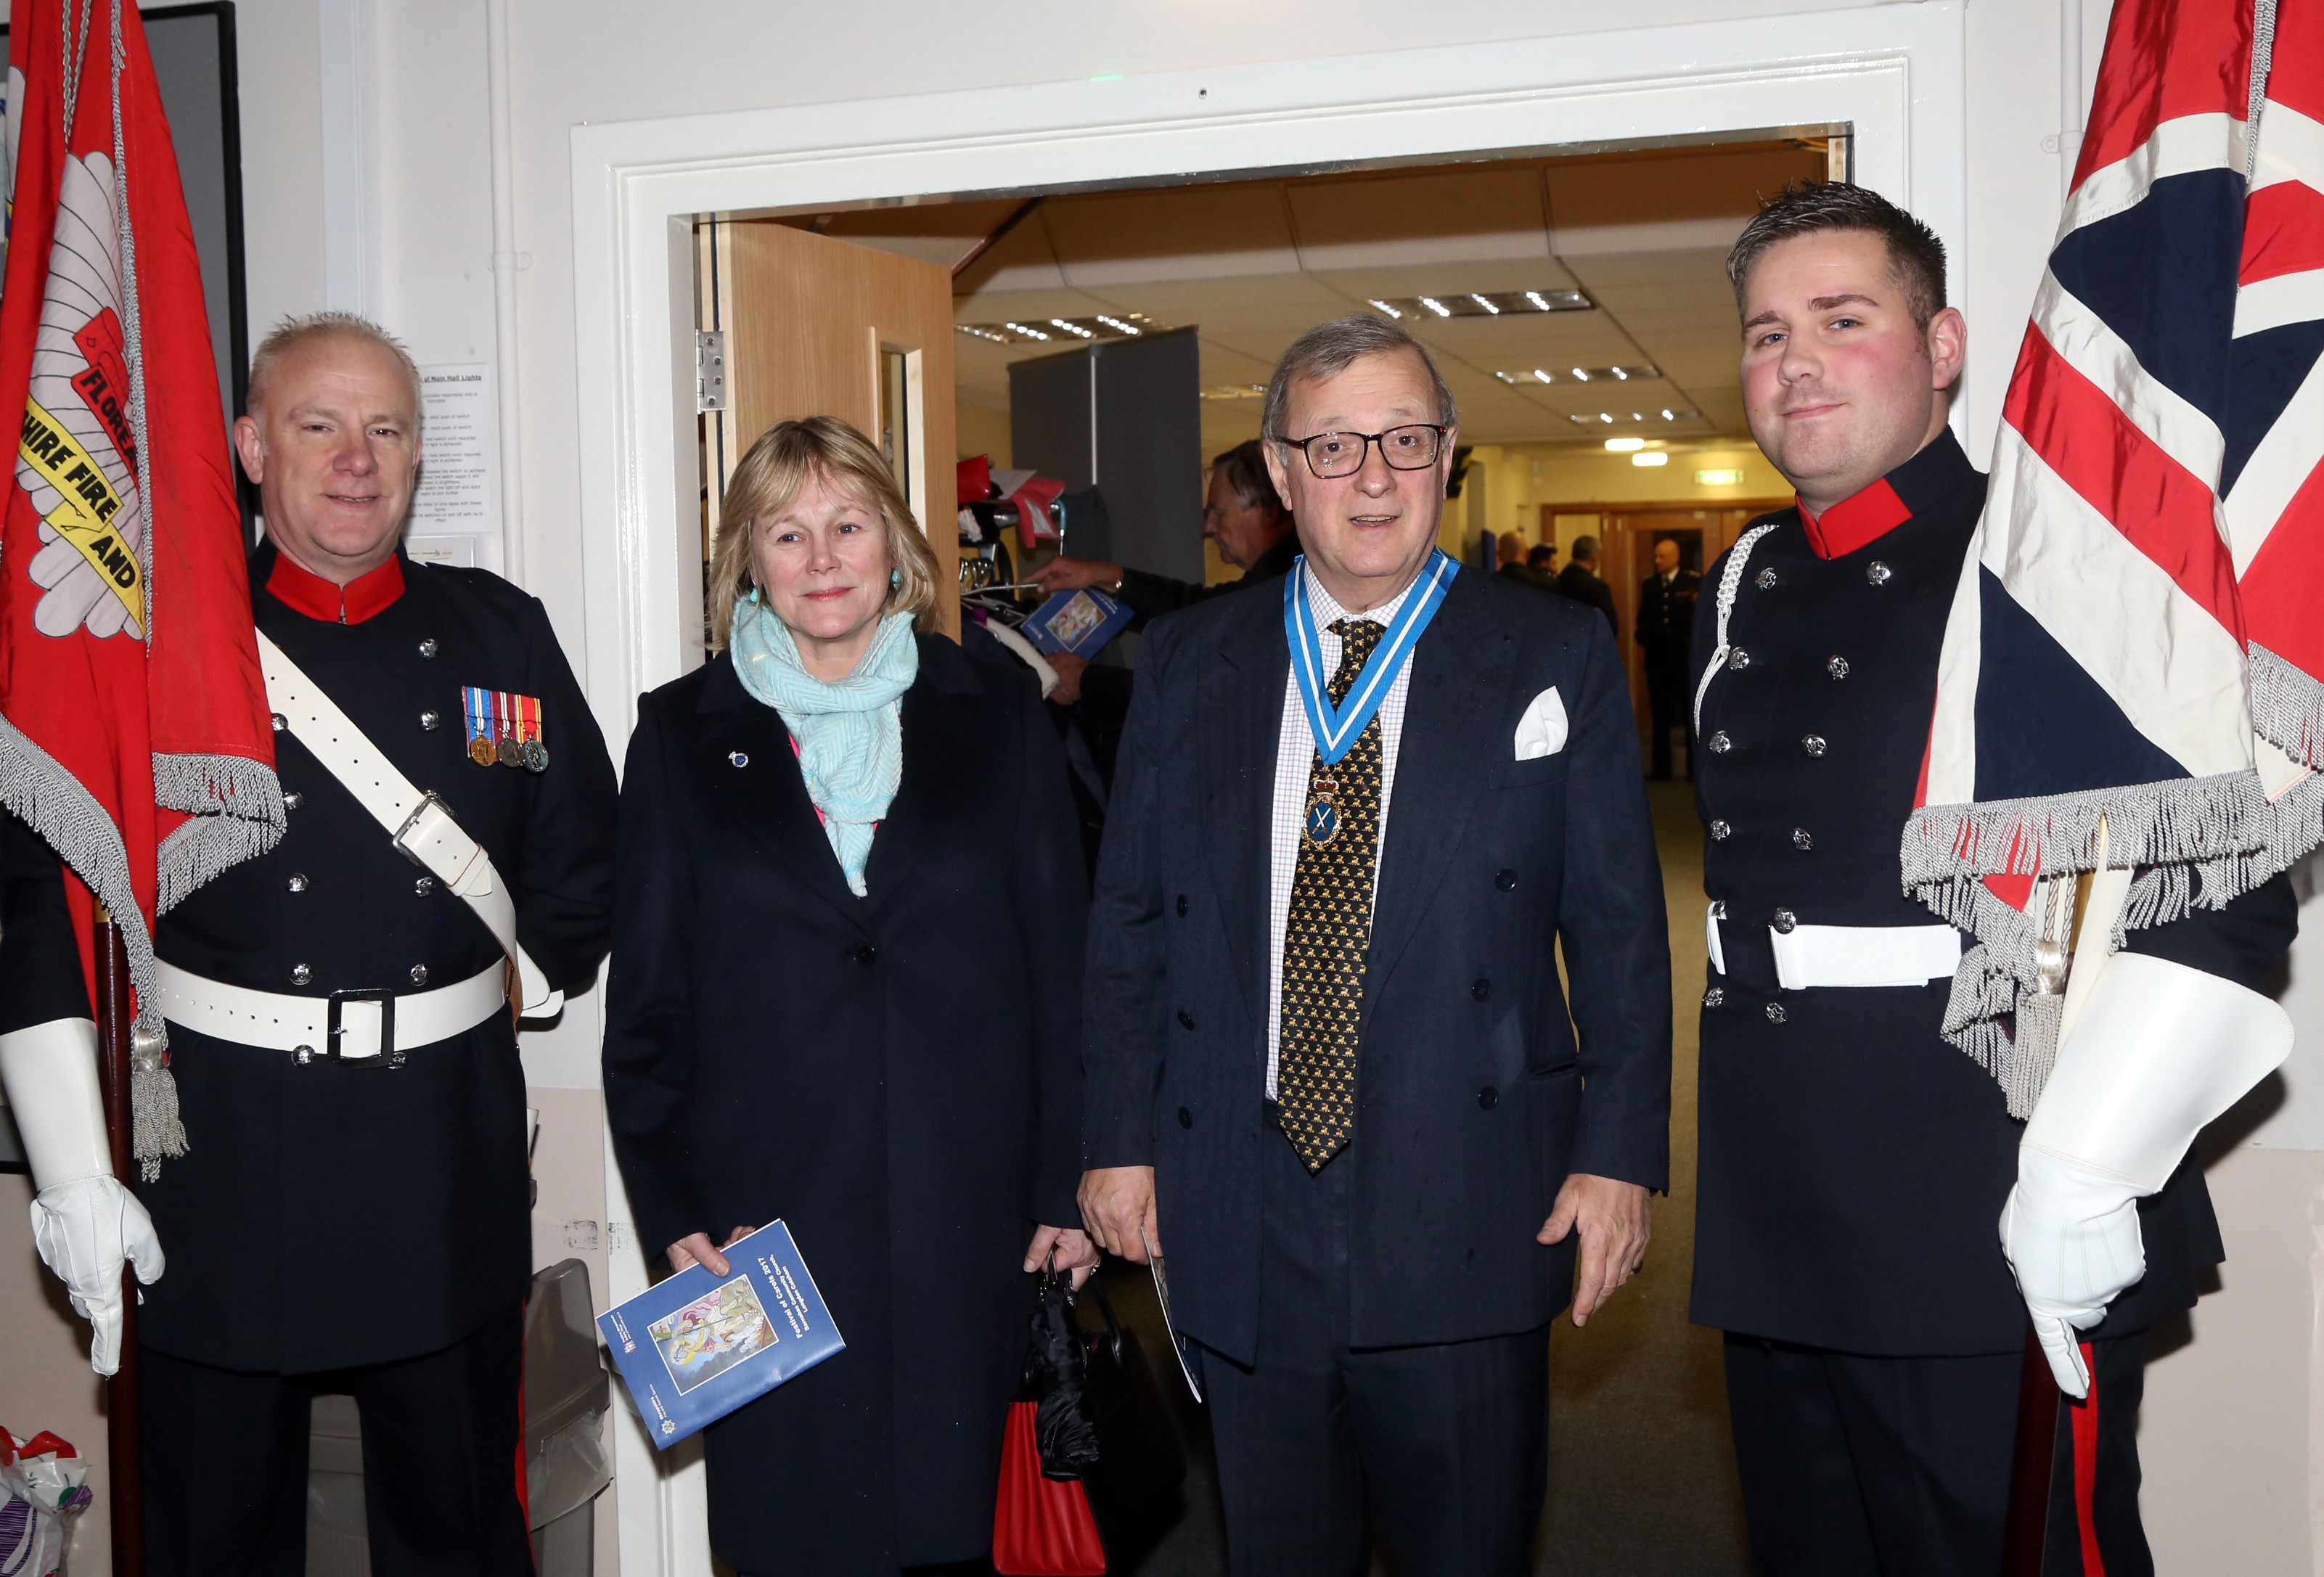 Shropshire High Sheriff and his wife are welcomed to Shropshire Fire and Rescue Service's Festival of Carols